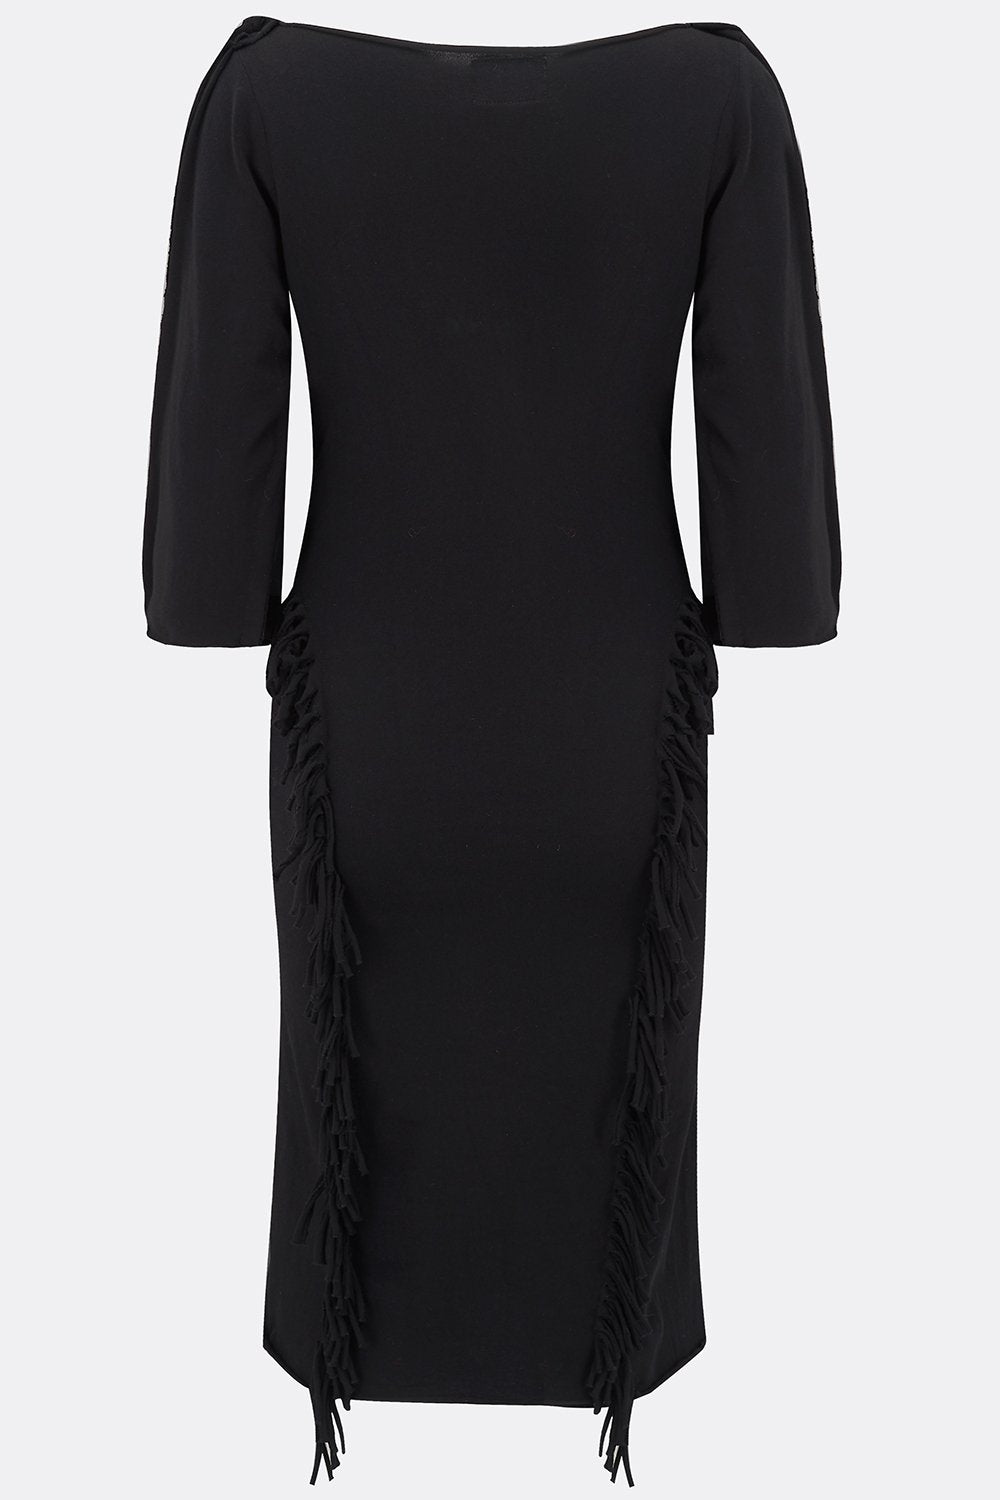 JOSEPHINE DRESS IN BLACK JERSEY-womenswear-A Child Of The Jago